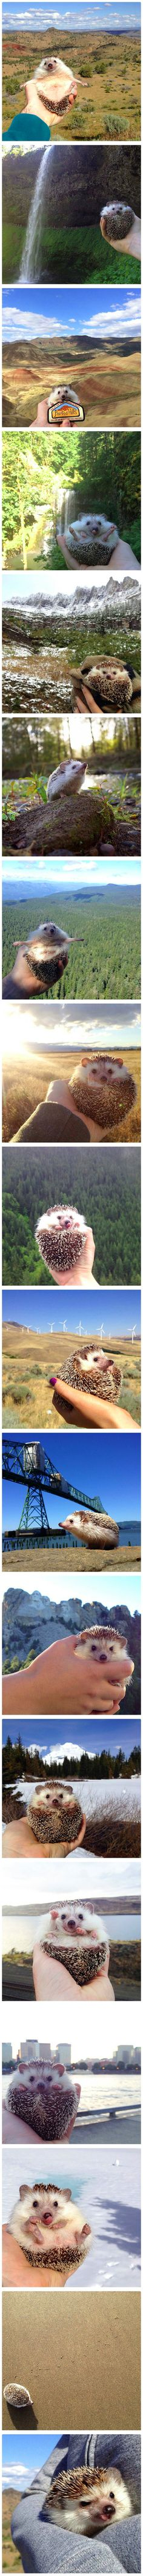 Those of us who want to travel but do not have the time or the money finally have a solution – we can travel in spirit together with Biddy the hedgehog, a little guy on Instagram whose travel photos are becoming insanely popular.